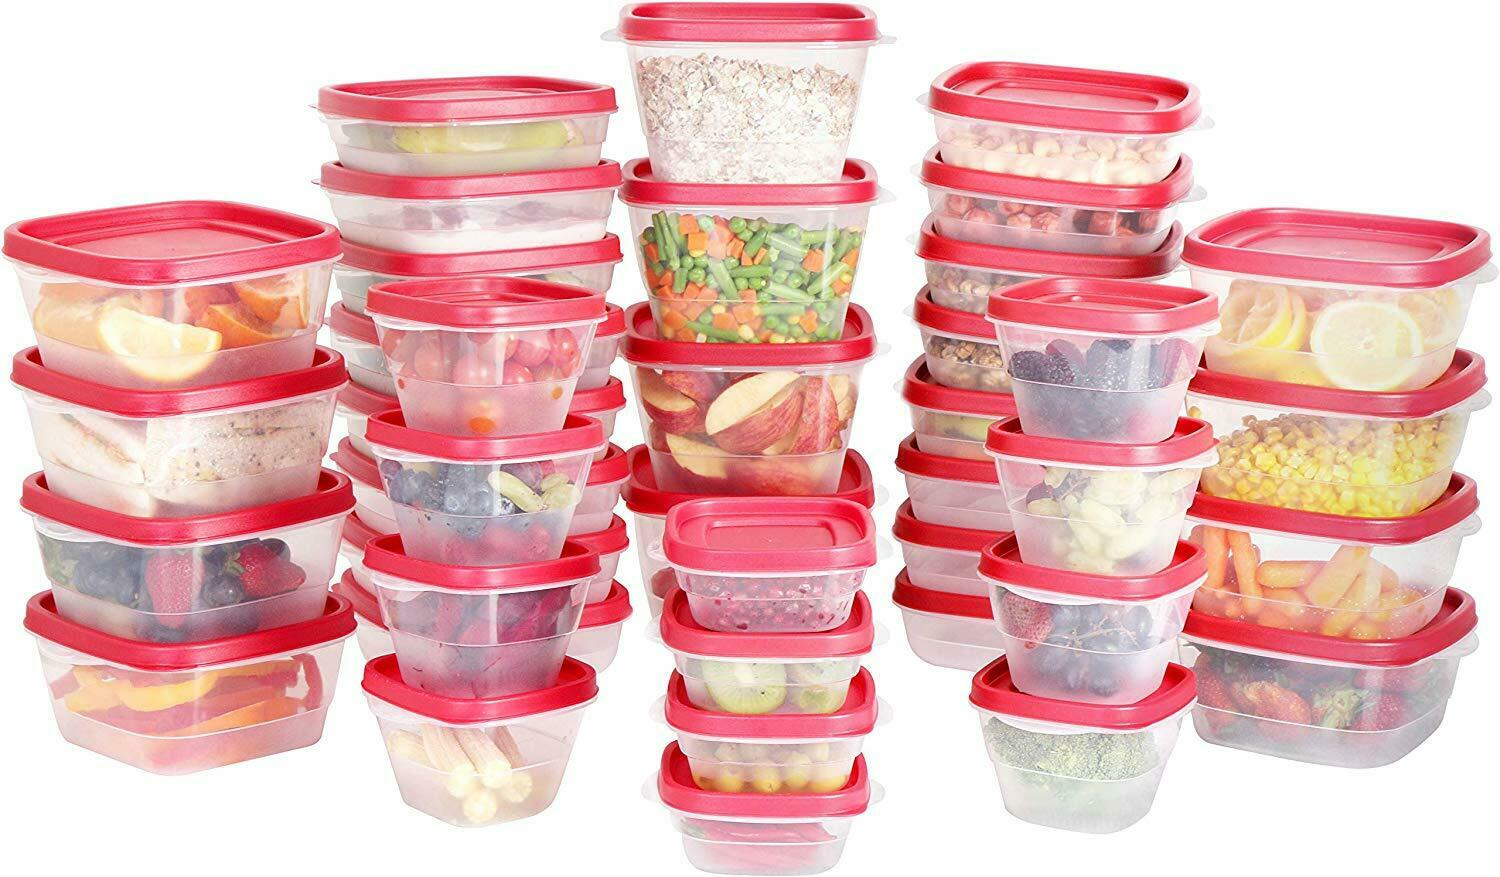 Plastic Food Storage Containers 80 Piece Set 40 Container 40 Lids Utopia Kitchen 1